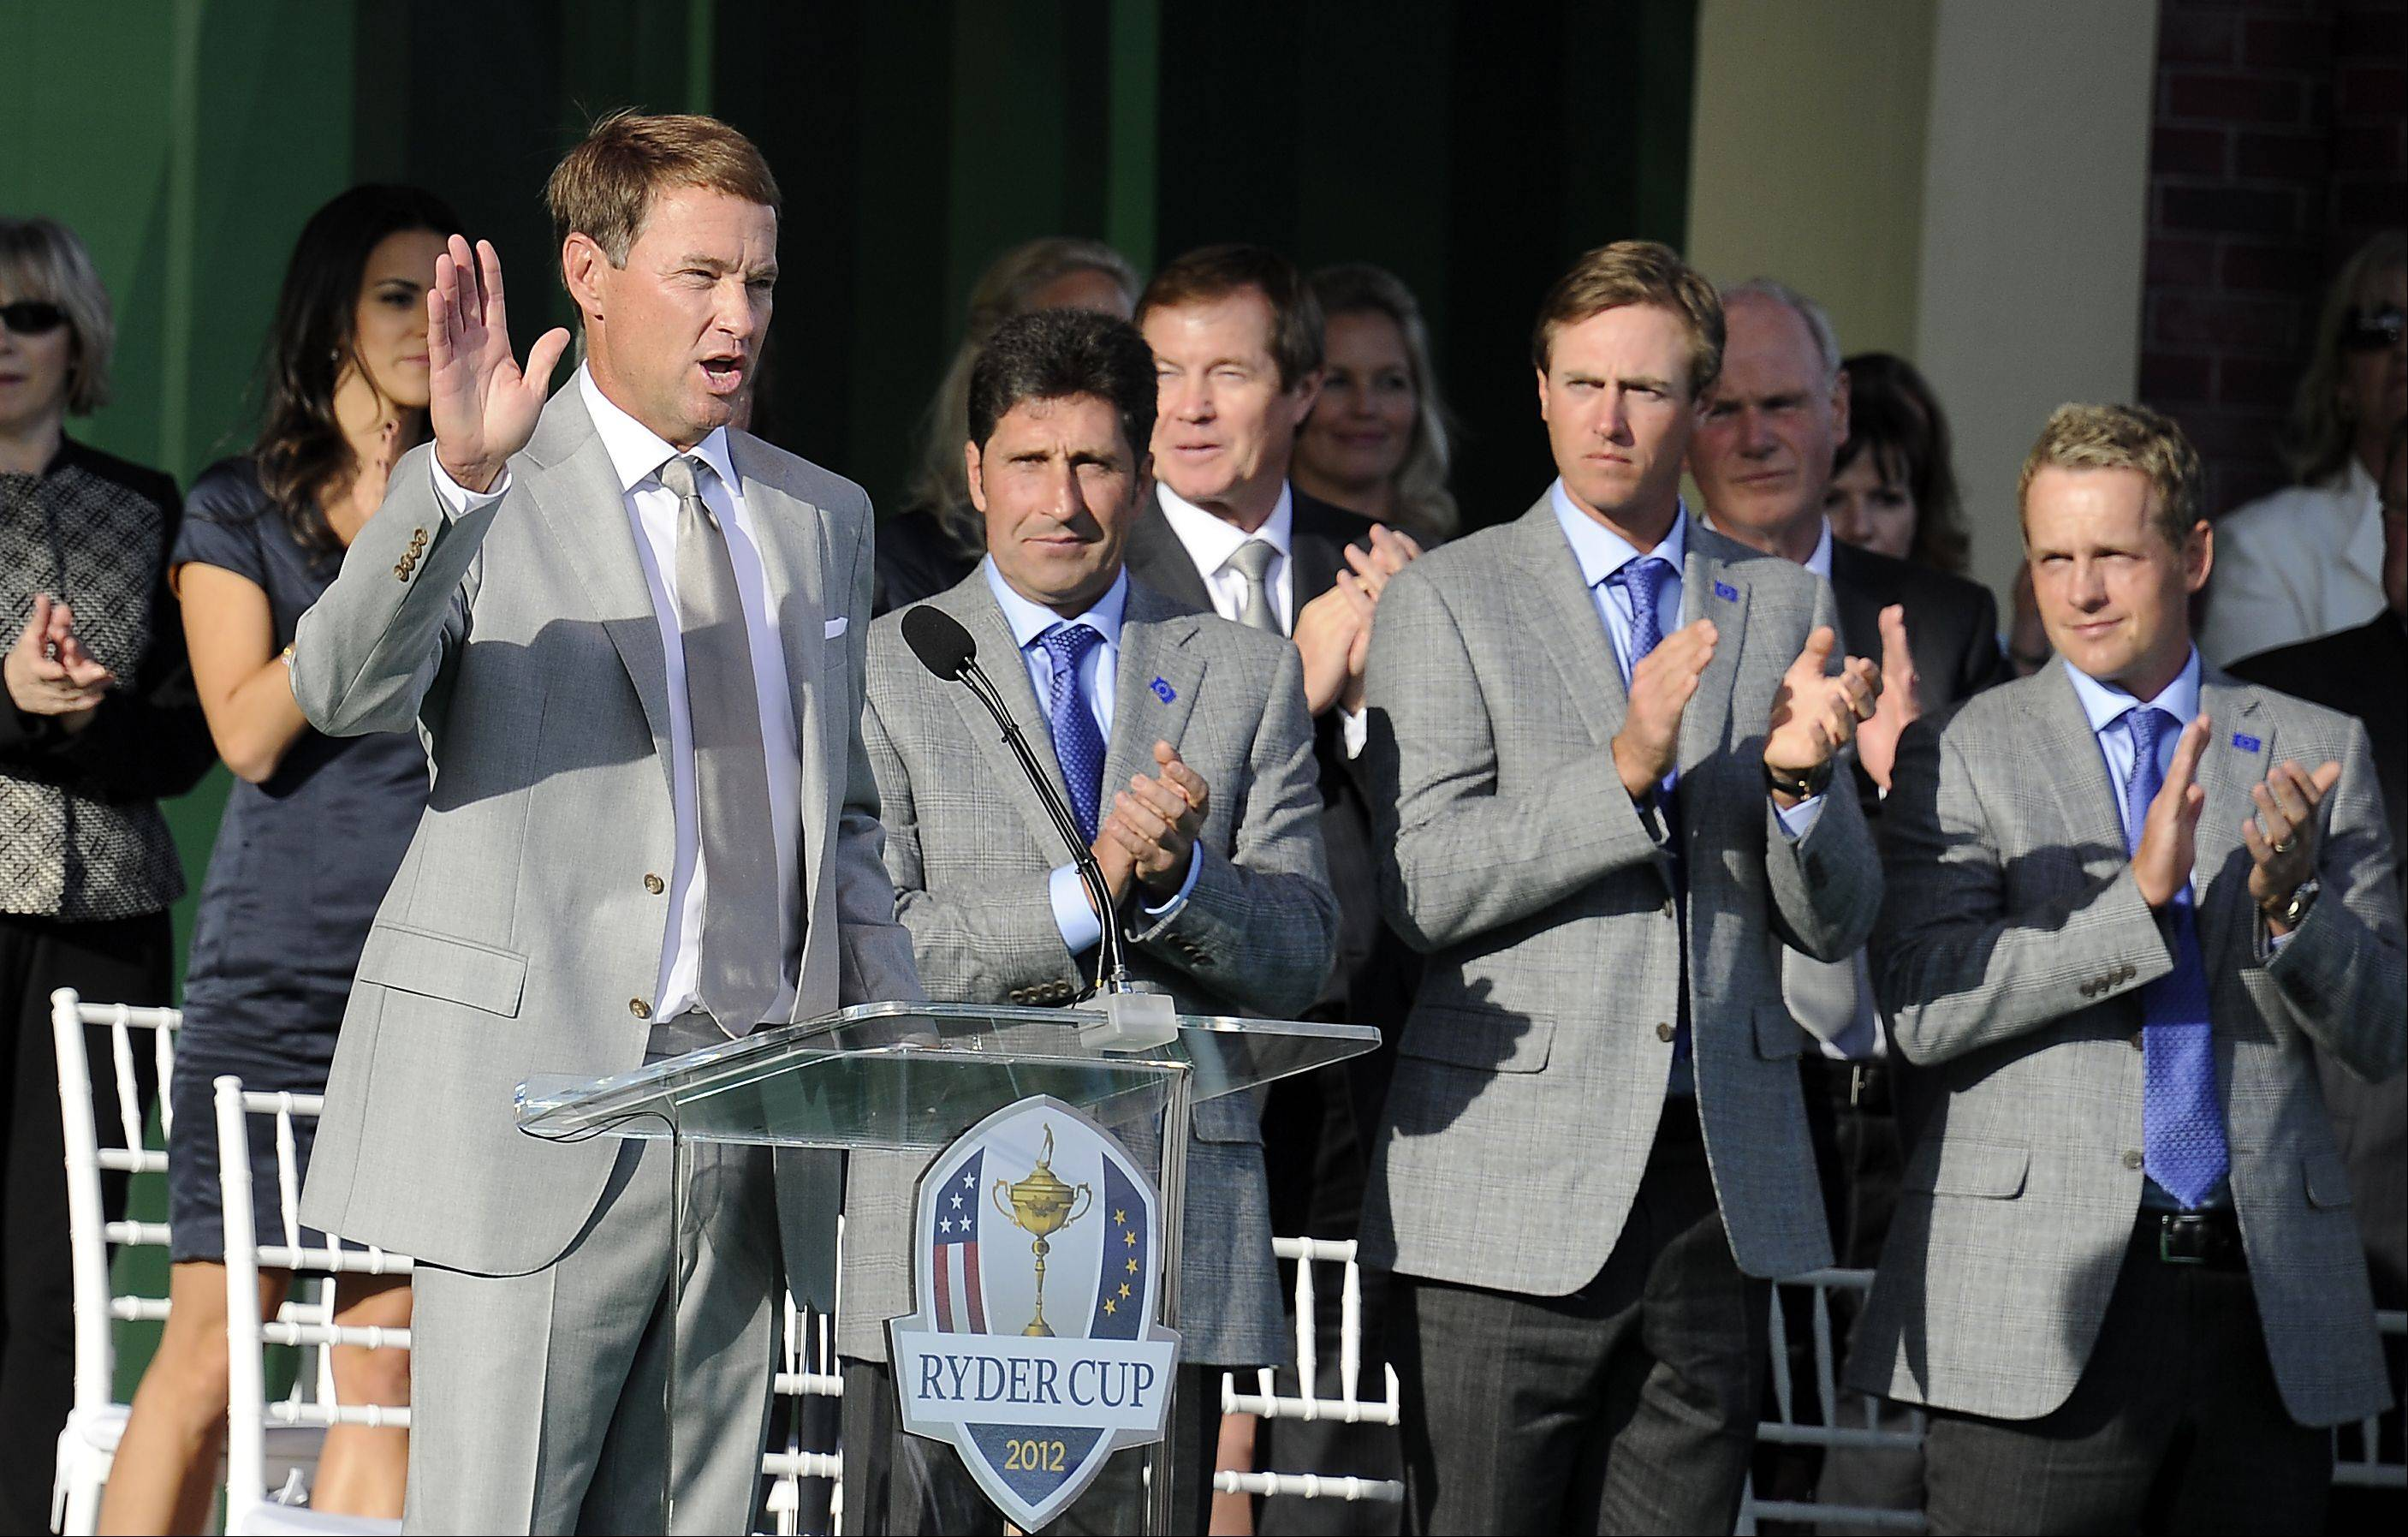 Davis Love III, captain of Team USA, speaks to the large crowd as Team Europe's Jose Maria Olazabal looks on with other members of the European team at the opening ceremonies at the Ryder Cup in Medinah on Thursday.